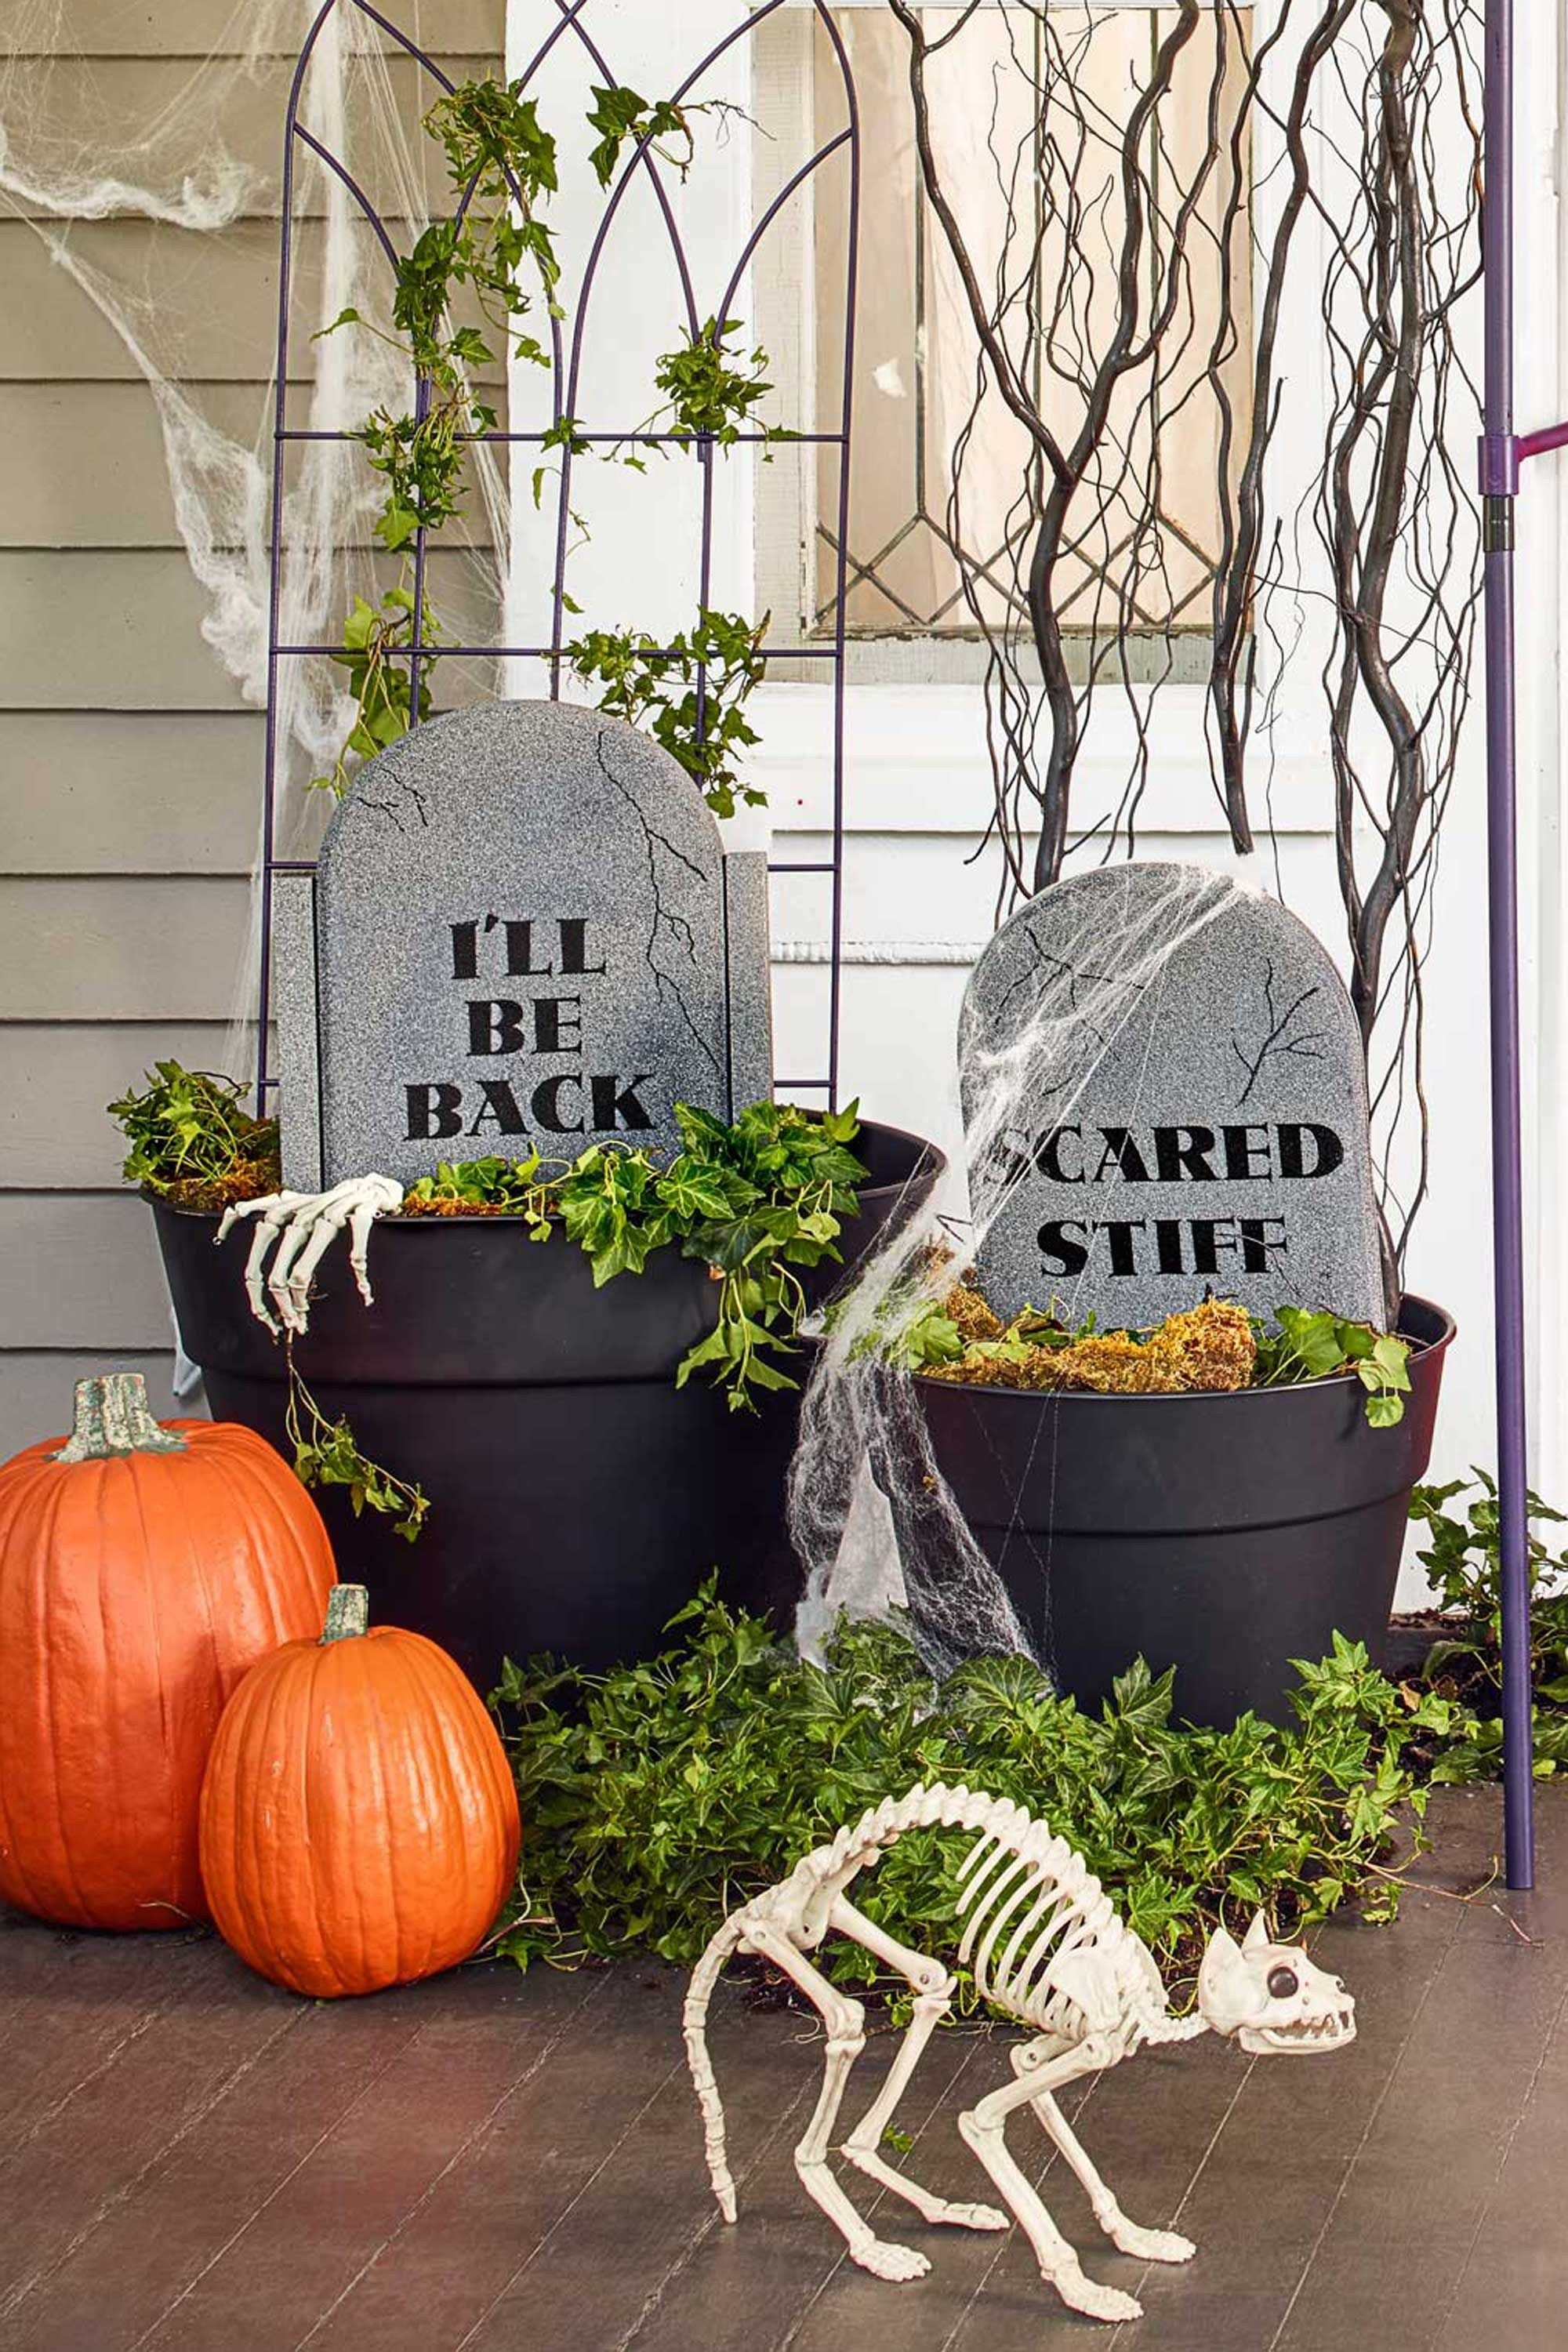 20 Outdoor Halloween Decorations On Sale Spooky Outdoor Halloween Decor Fun Diy Halloween Decorations Halloween Front Porch Decor